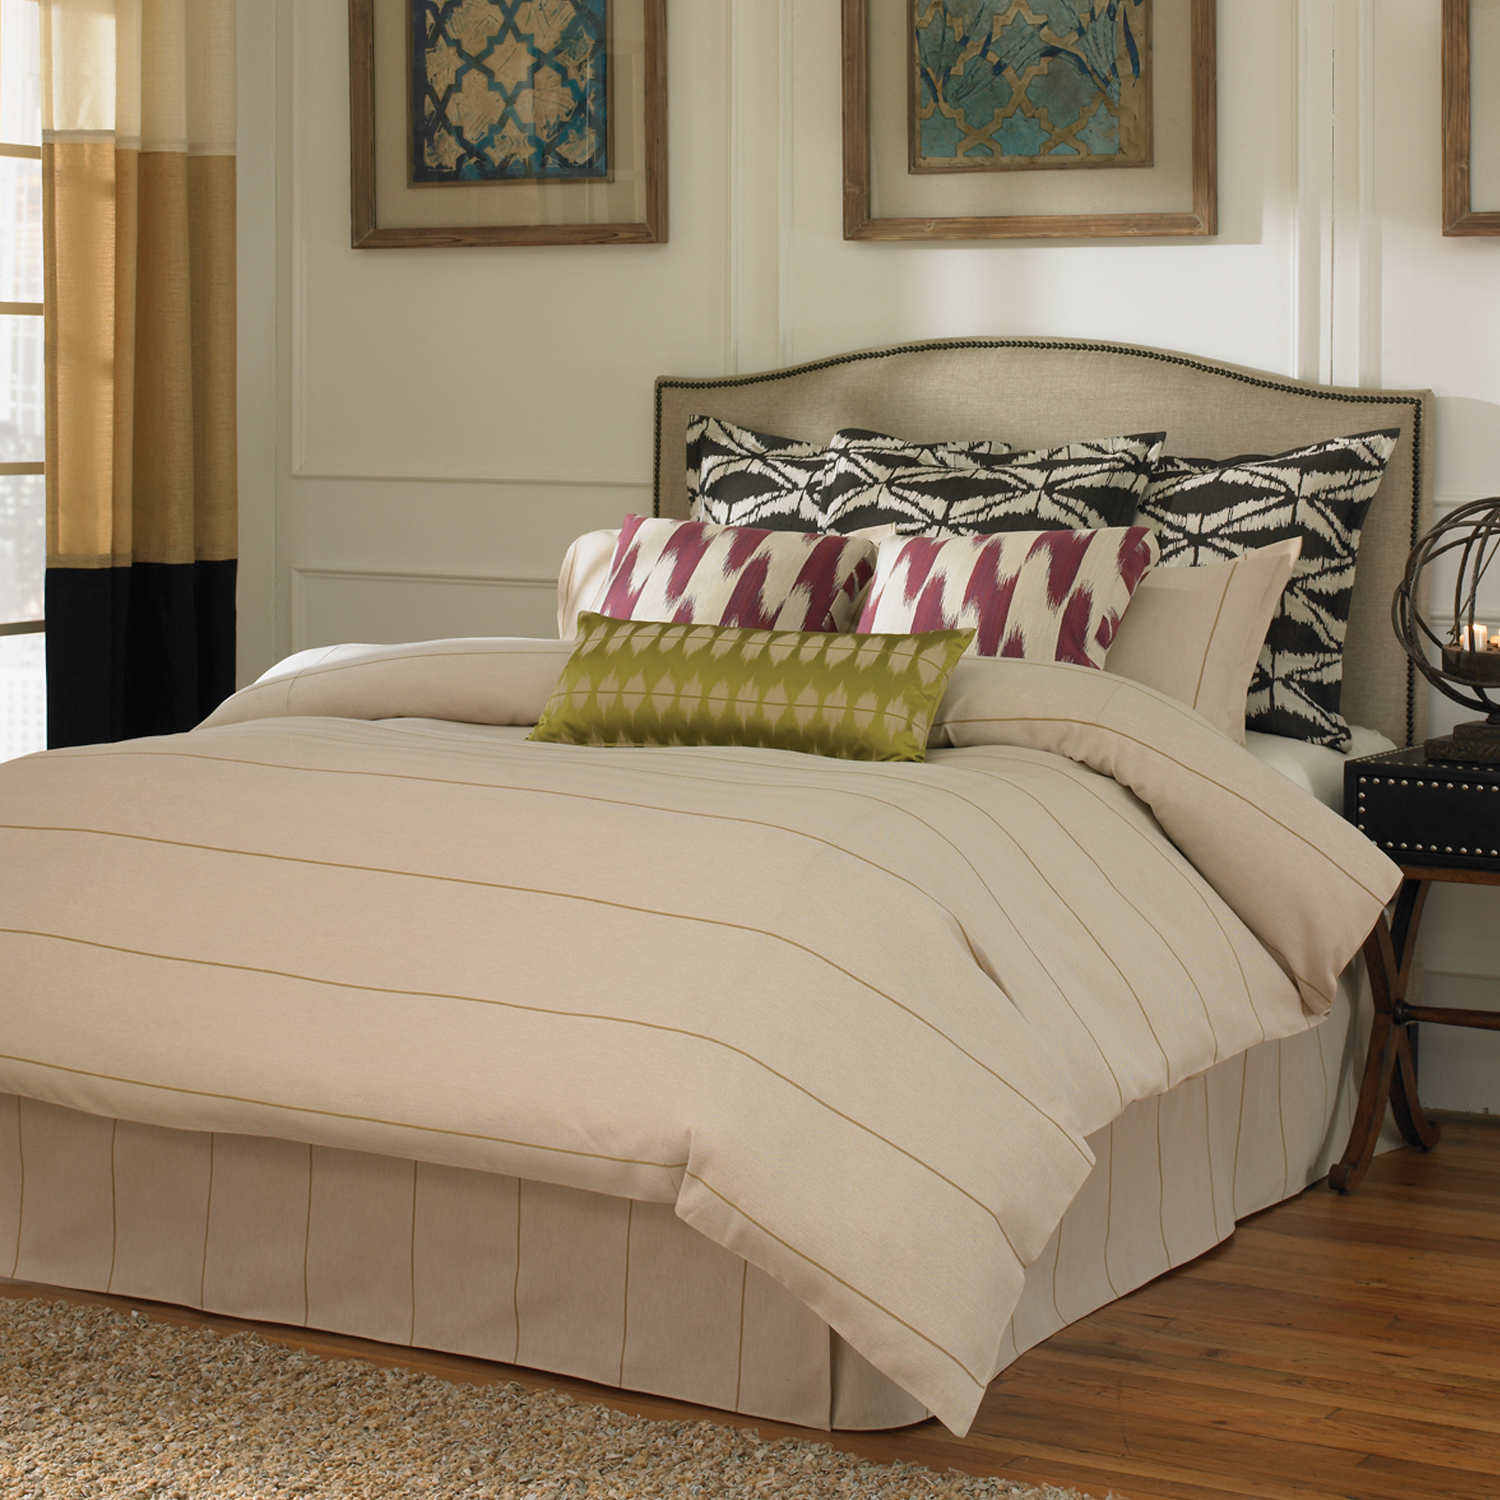 wildcat territory bedding peri collection -